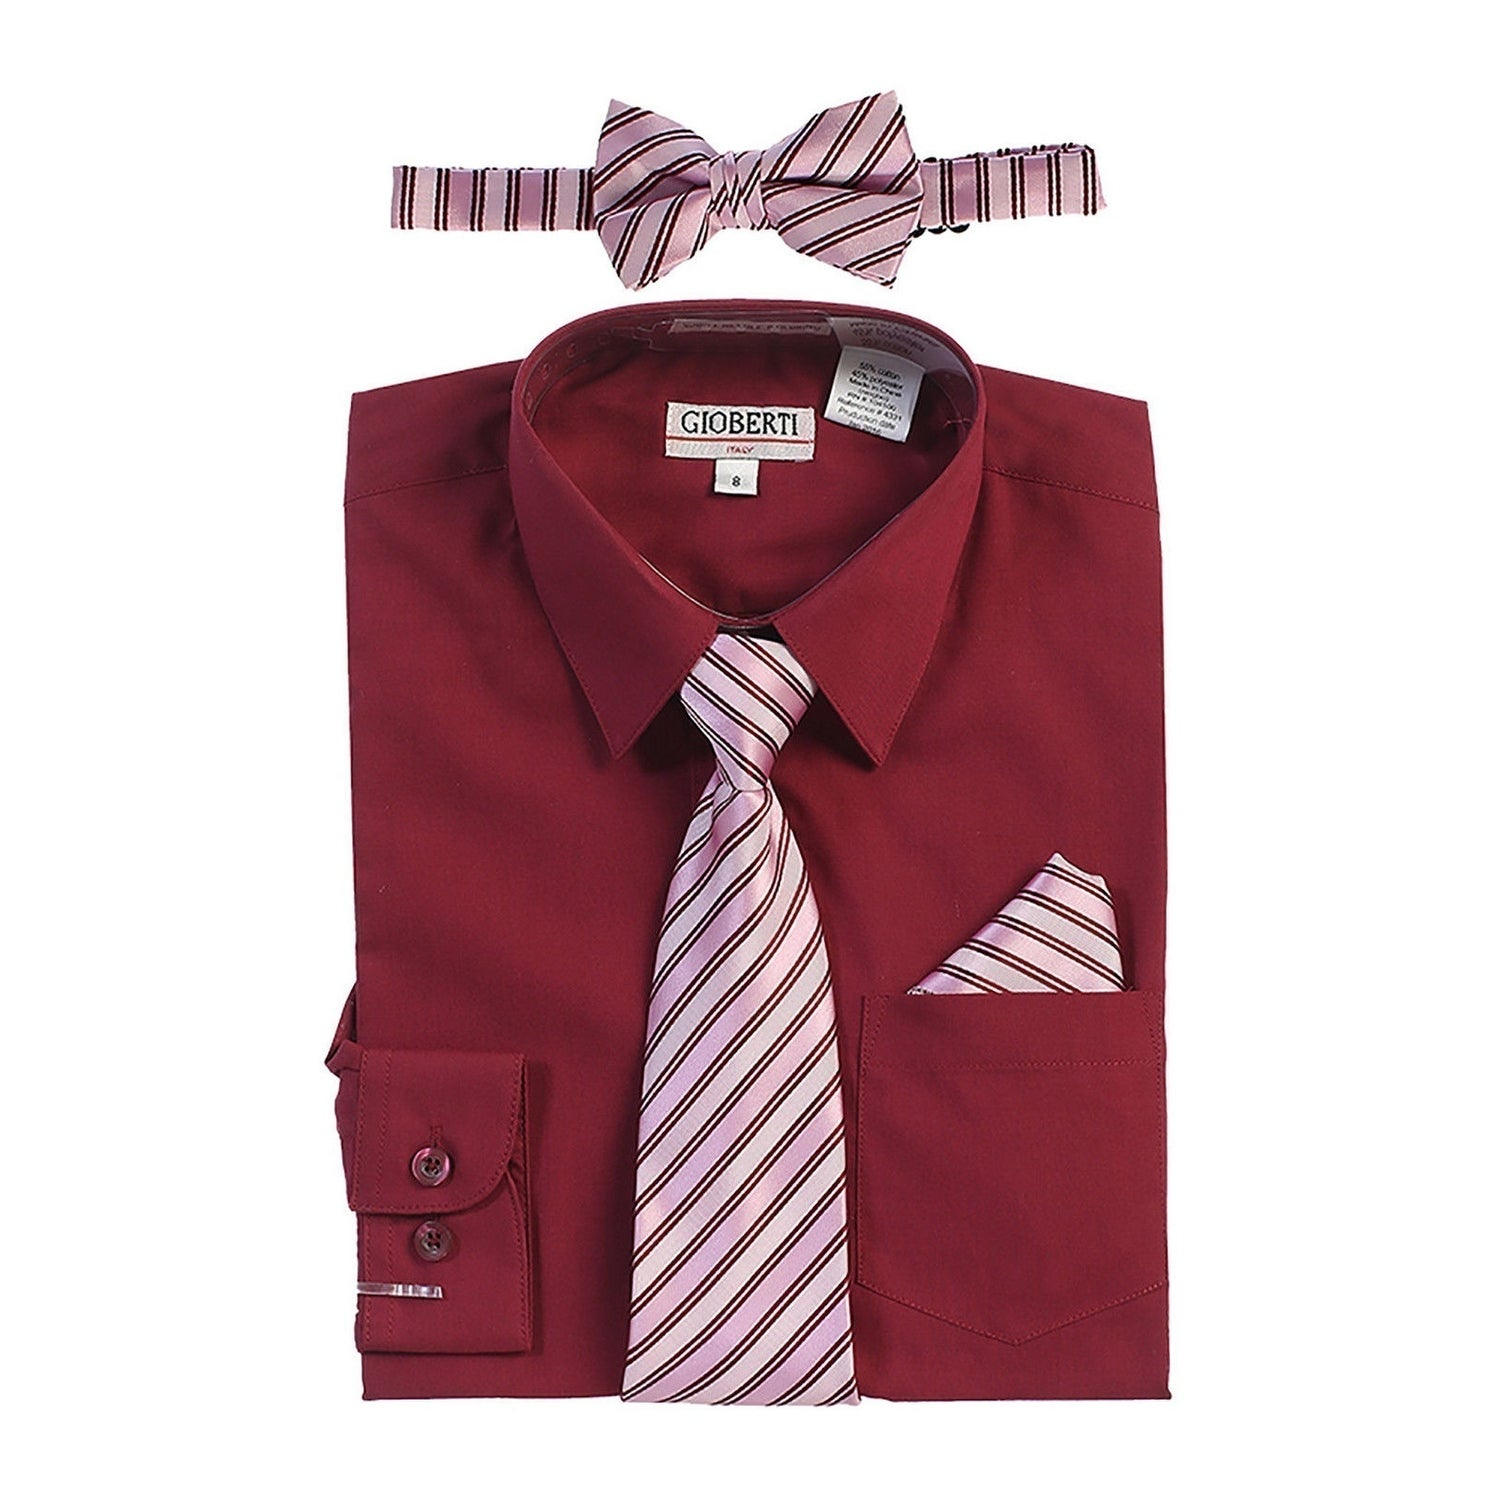 e158c251437d1 Shop Gioberti Little Boys Burgundy Shirt Necktie Bow Tie Pocket Square Set  - Free Shipping On Orders Over $45 - Overstock - 21130029